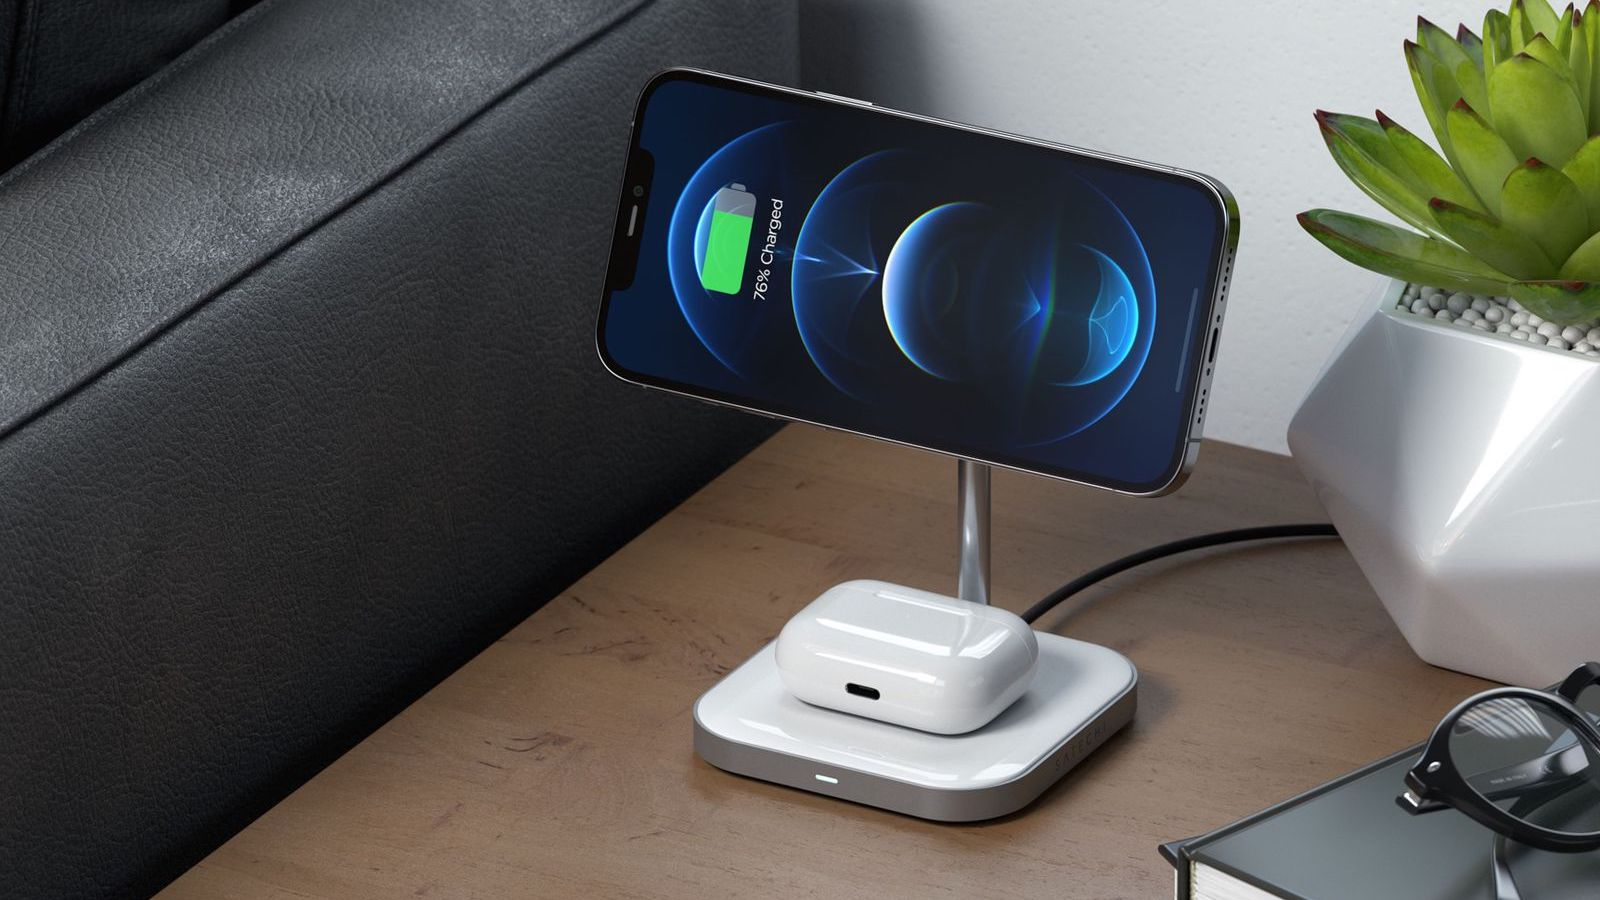 Satechi Magnetic 2-in-1 Wireless Charging Stand charges two devices simultaneously